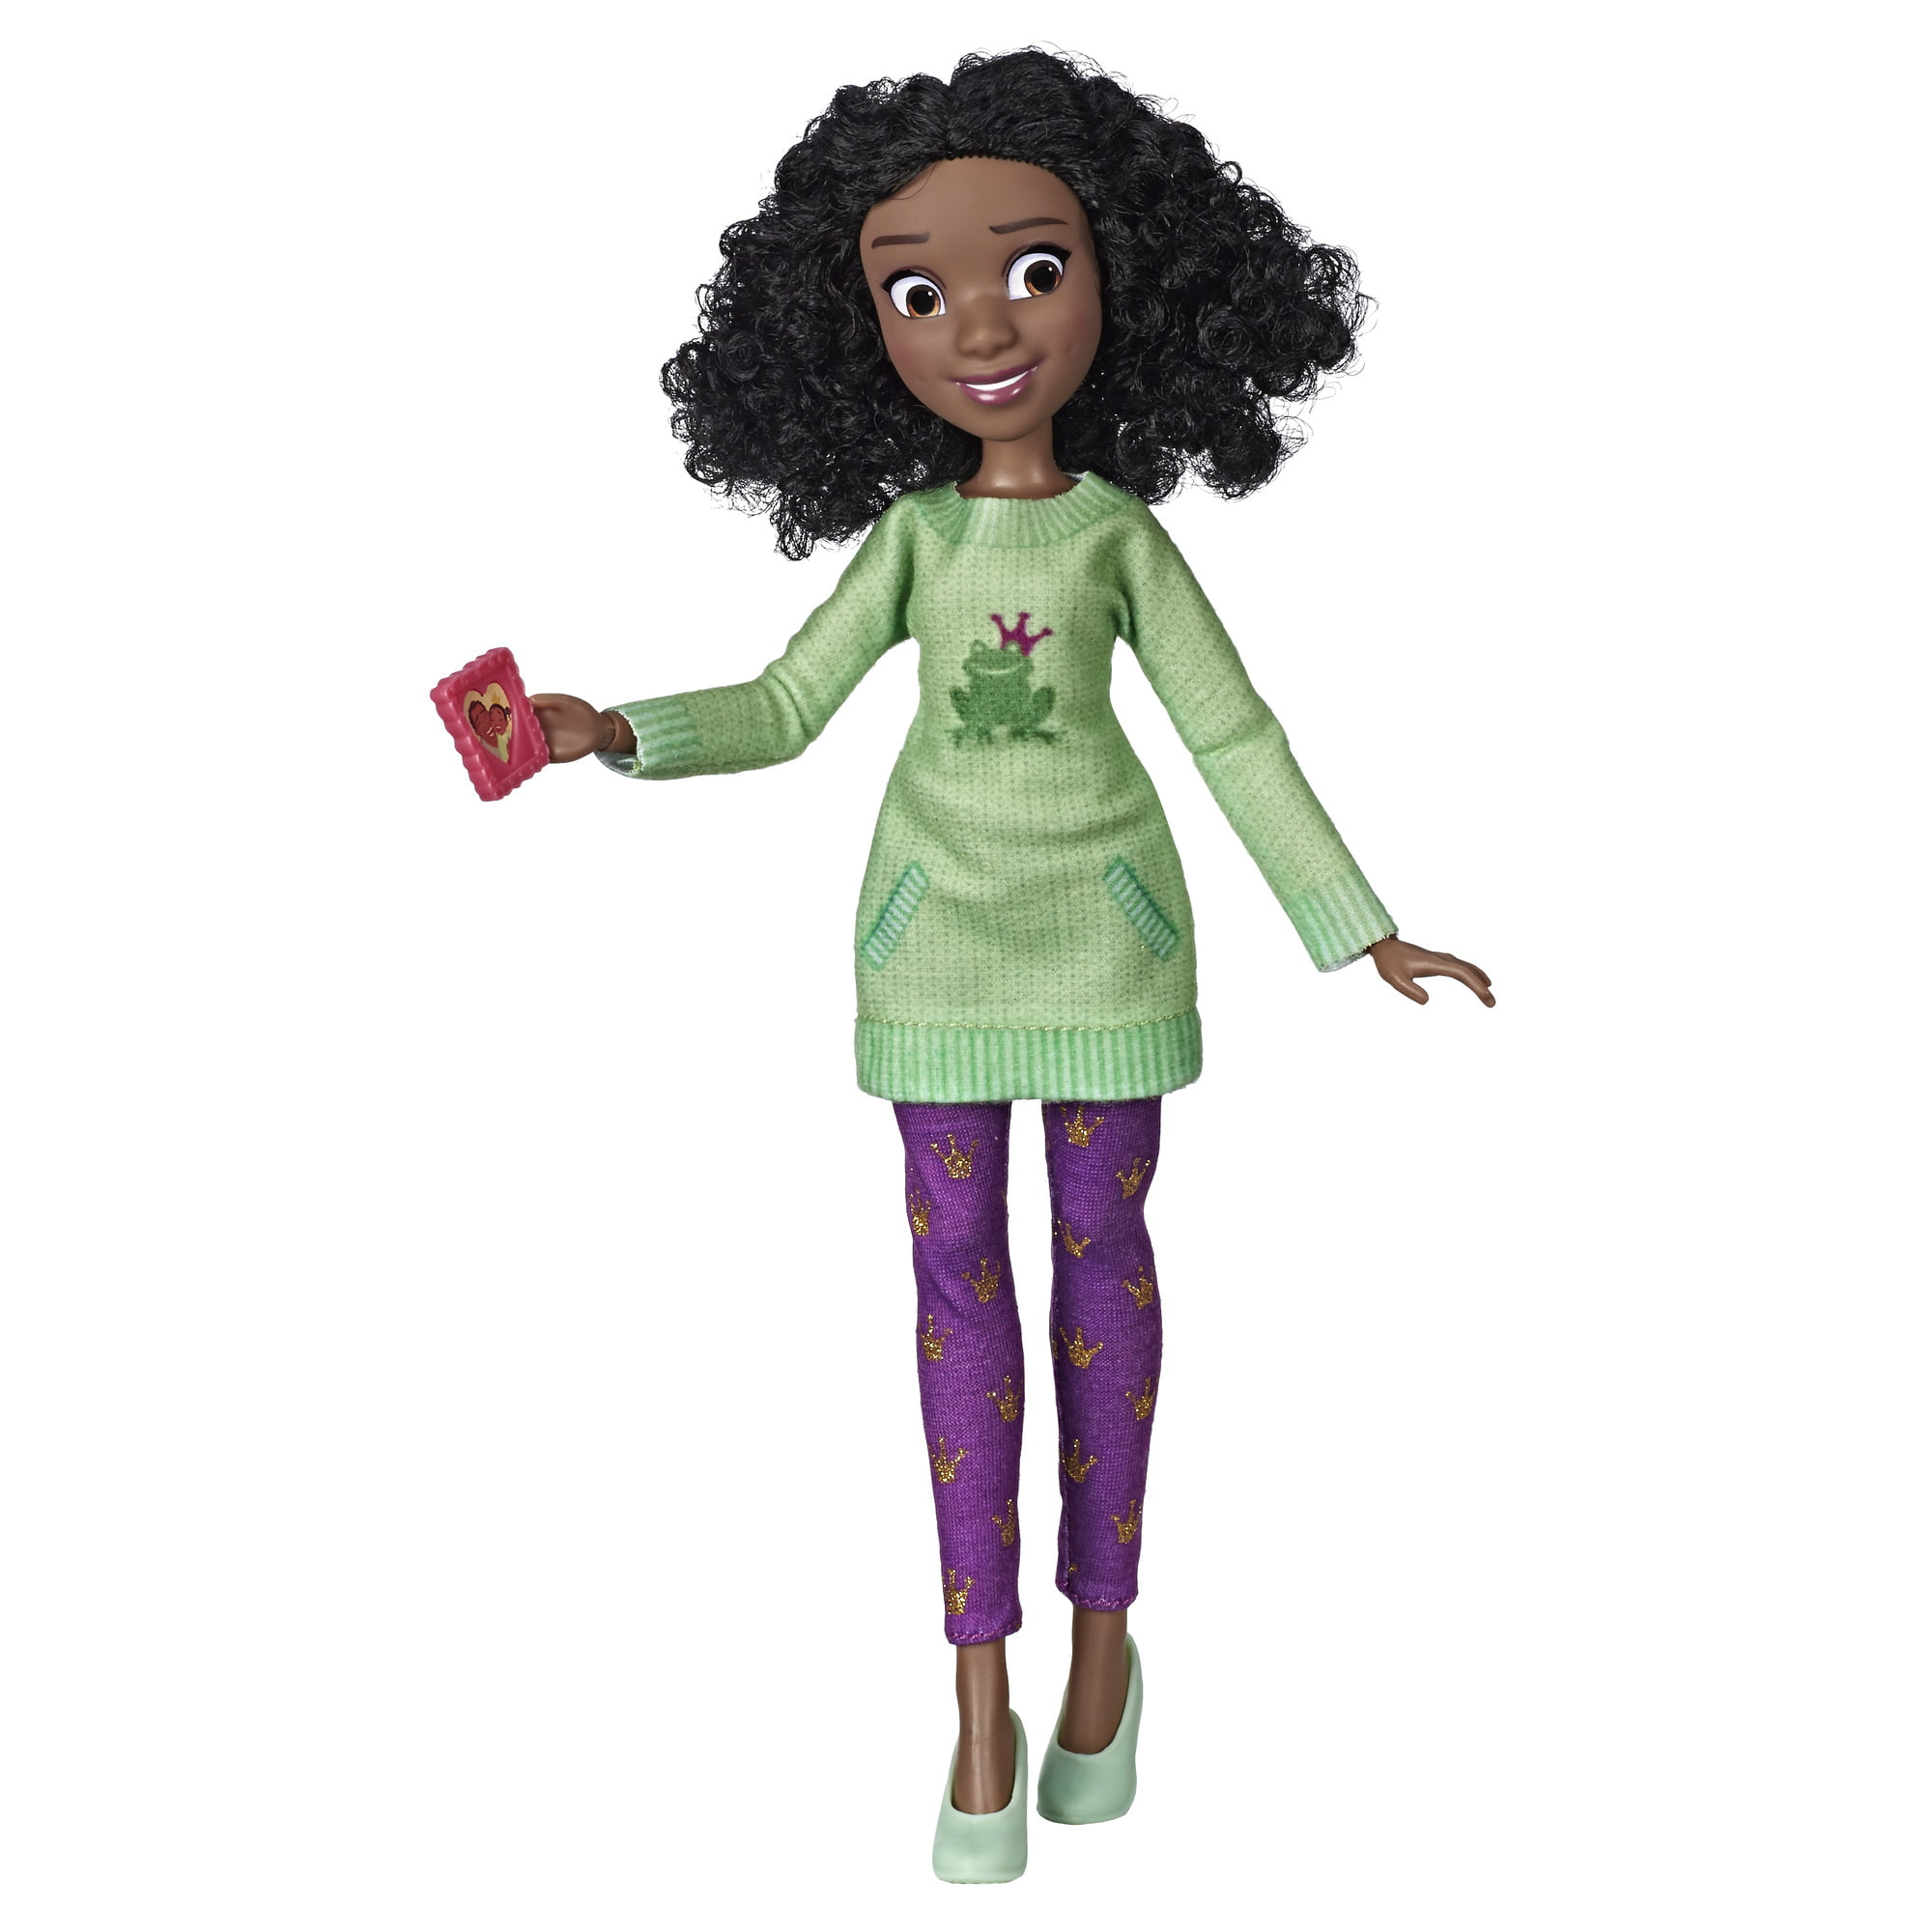 Disney Princess Comfy Squad Tiana Ralph Breaks The Internet